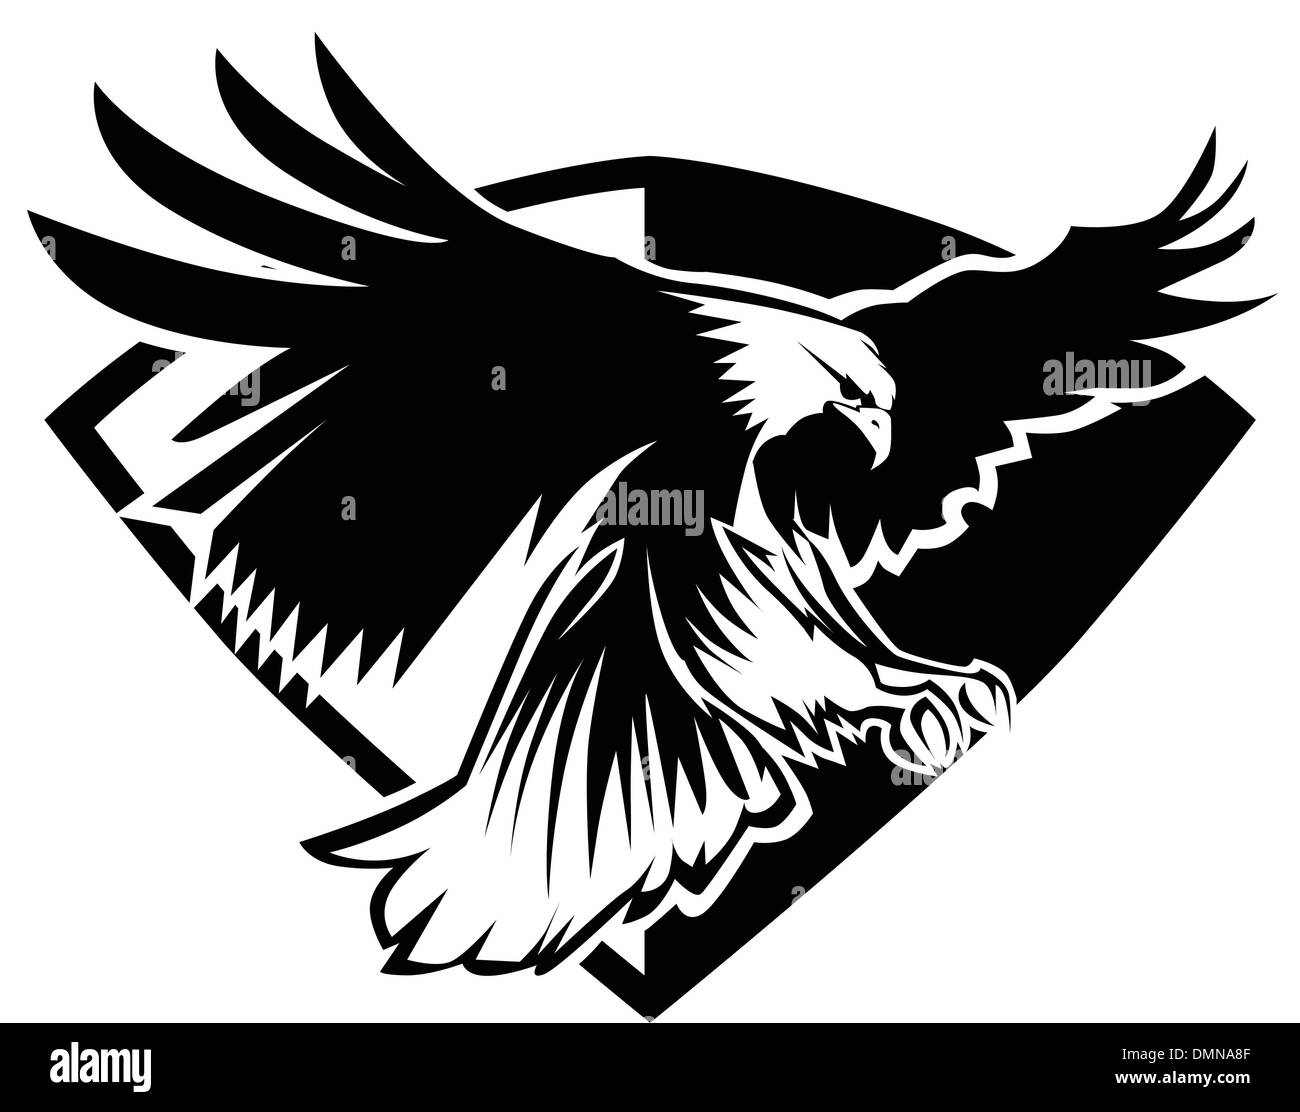 Eagle Mascot Flying Wings Badge Design - Stock Image